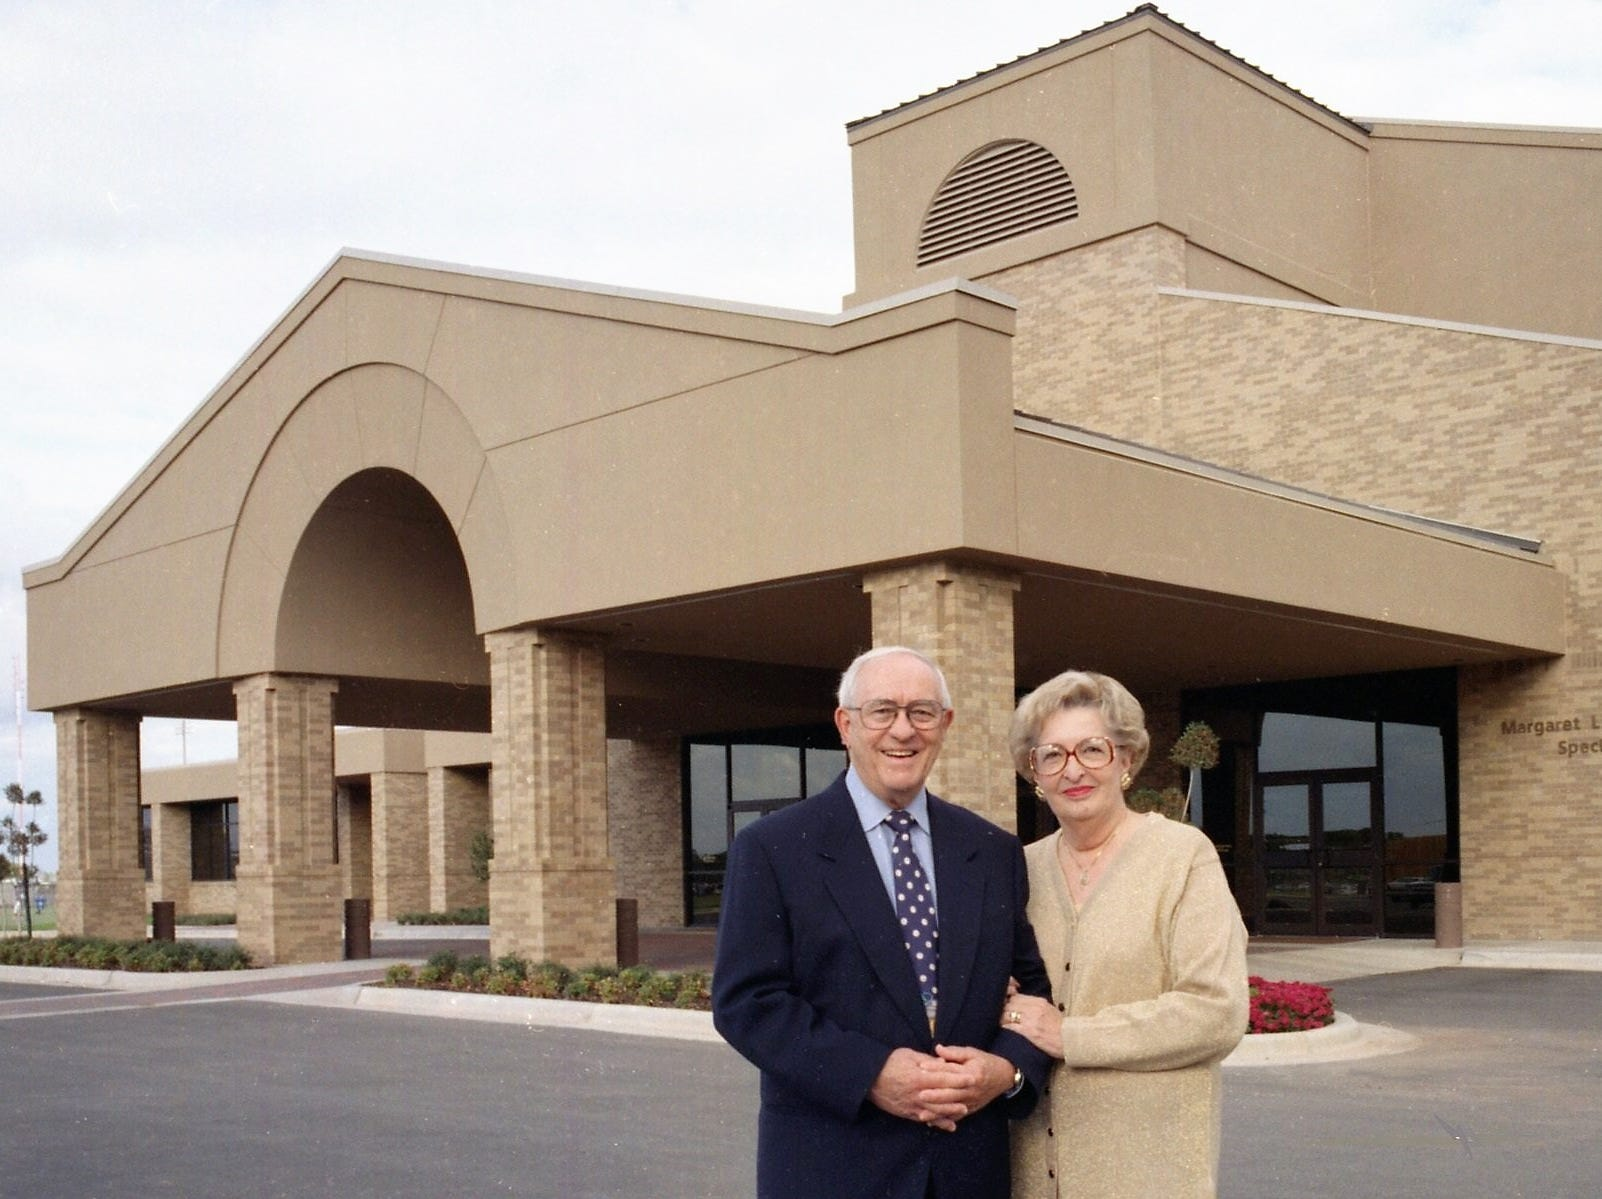 William and Peggy Teague stand in front of the Margaret L. and William J. Teague Special Events Center. It now is the Margaret L. and William J. Teague Center.